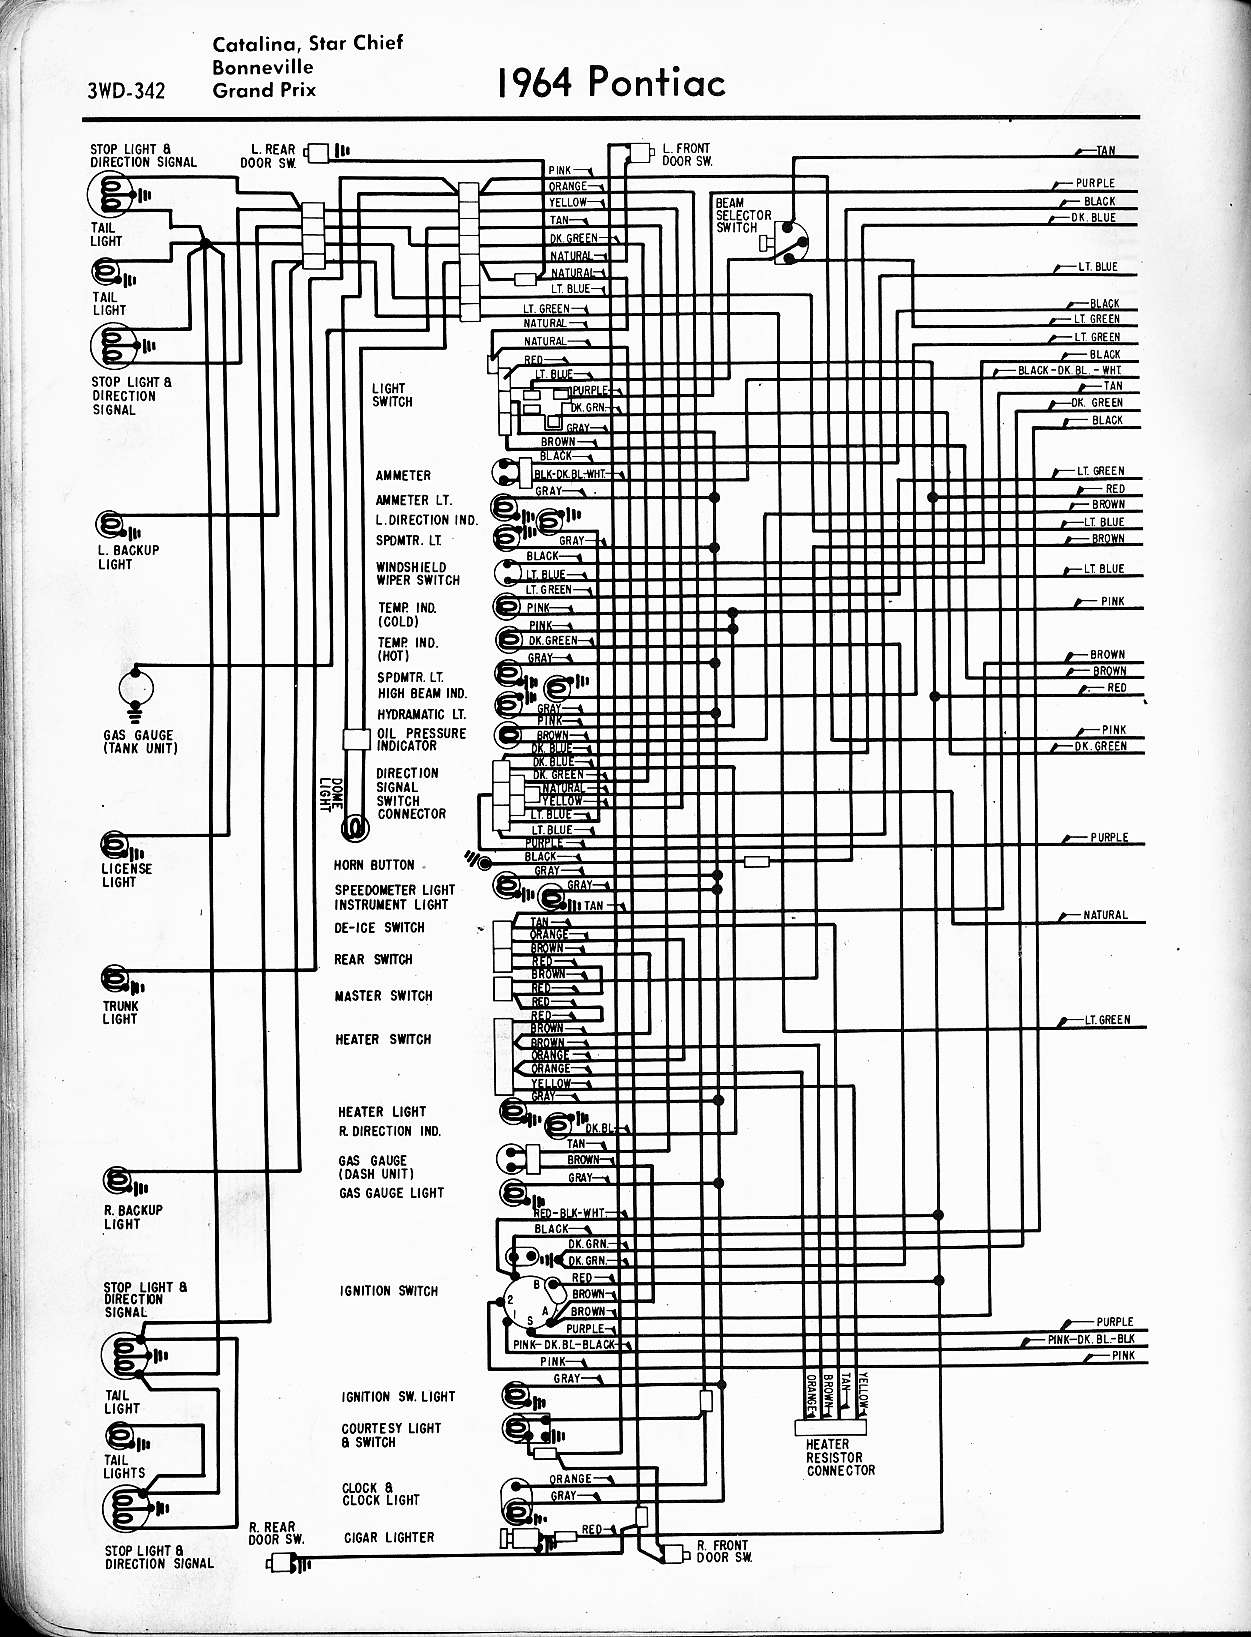 2005 Chevy Silverado Brake Light Wiring Diagram also Circuits Circuit Symbols moreover pact Rc Switch Circuit furthermore Domestic Refrigerator  ponents And Operations moreover Lennox Control Board Wiring Diagram. on thermostat electrical wiring